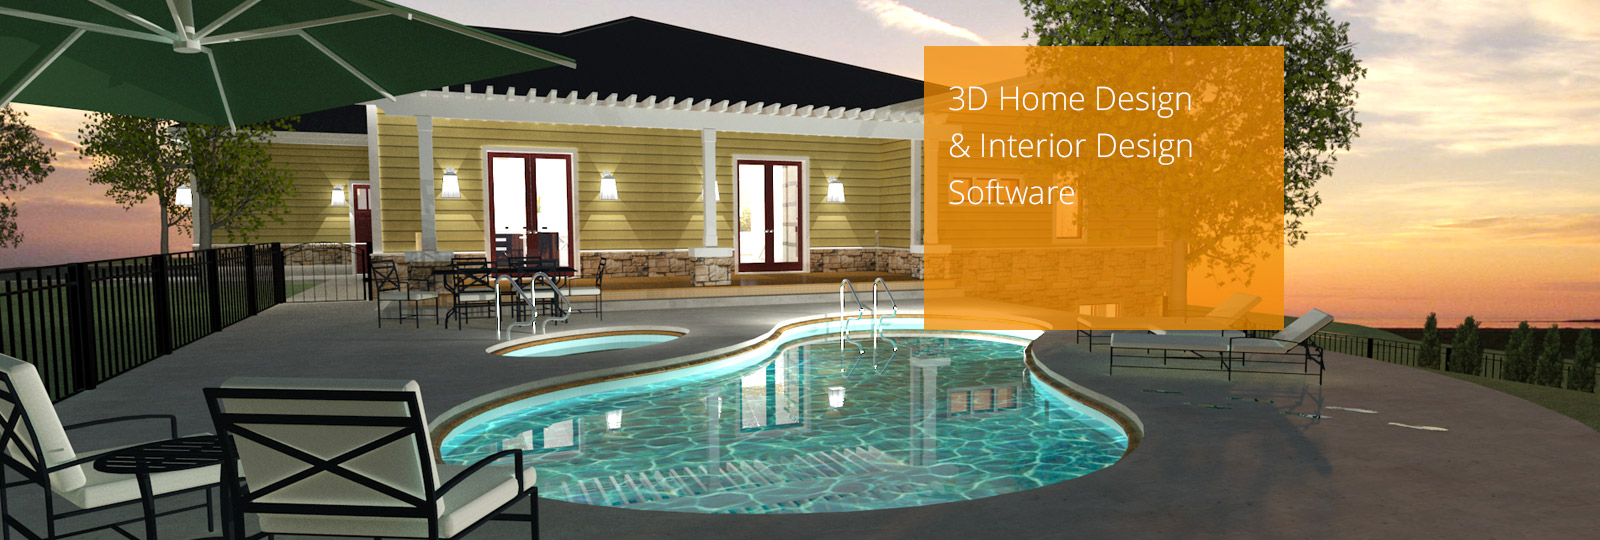 home designer software home designer software video tour home design home design architectural rendering civil